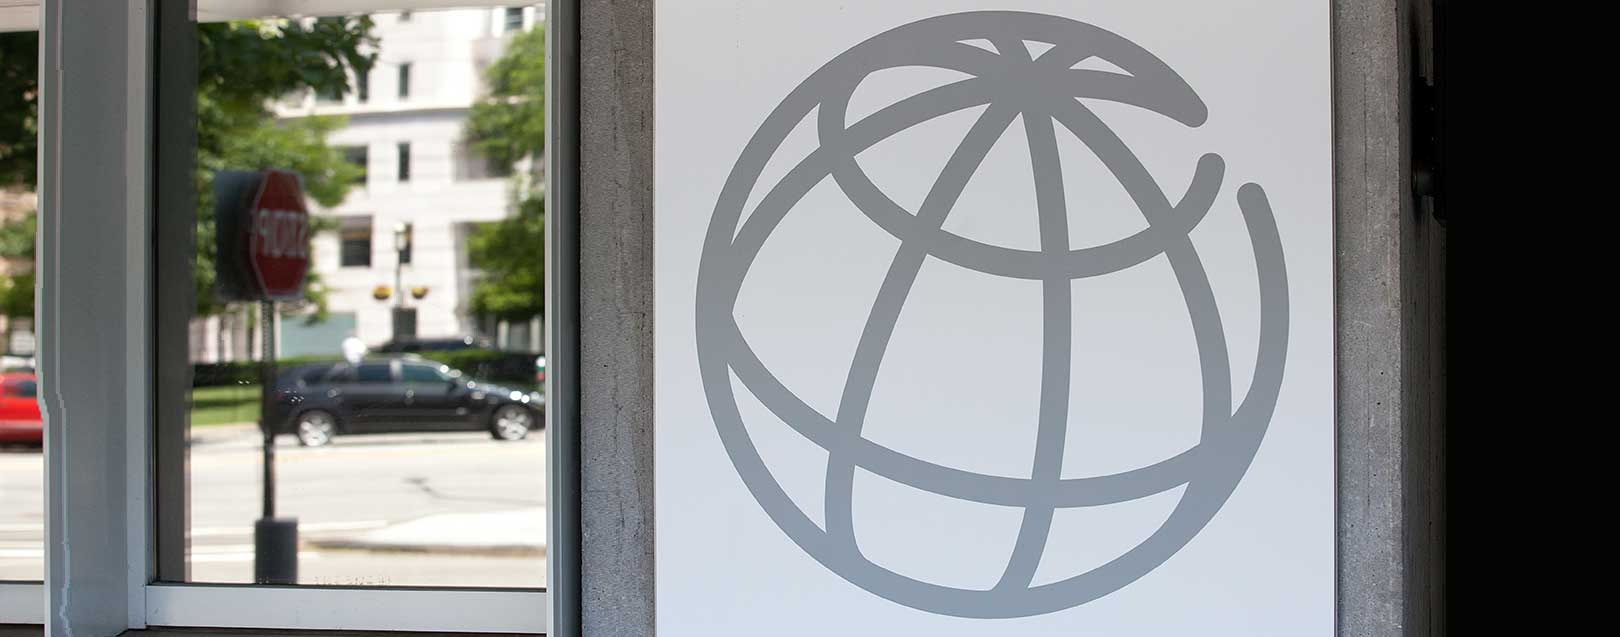 Positive outlook for East Asia: World Bank